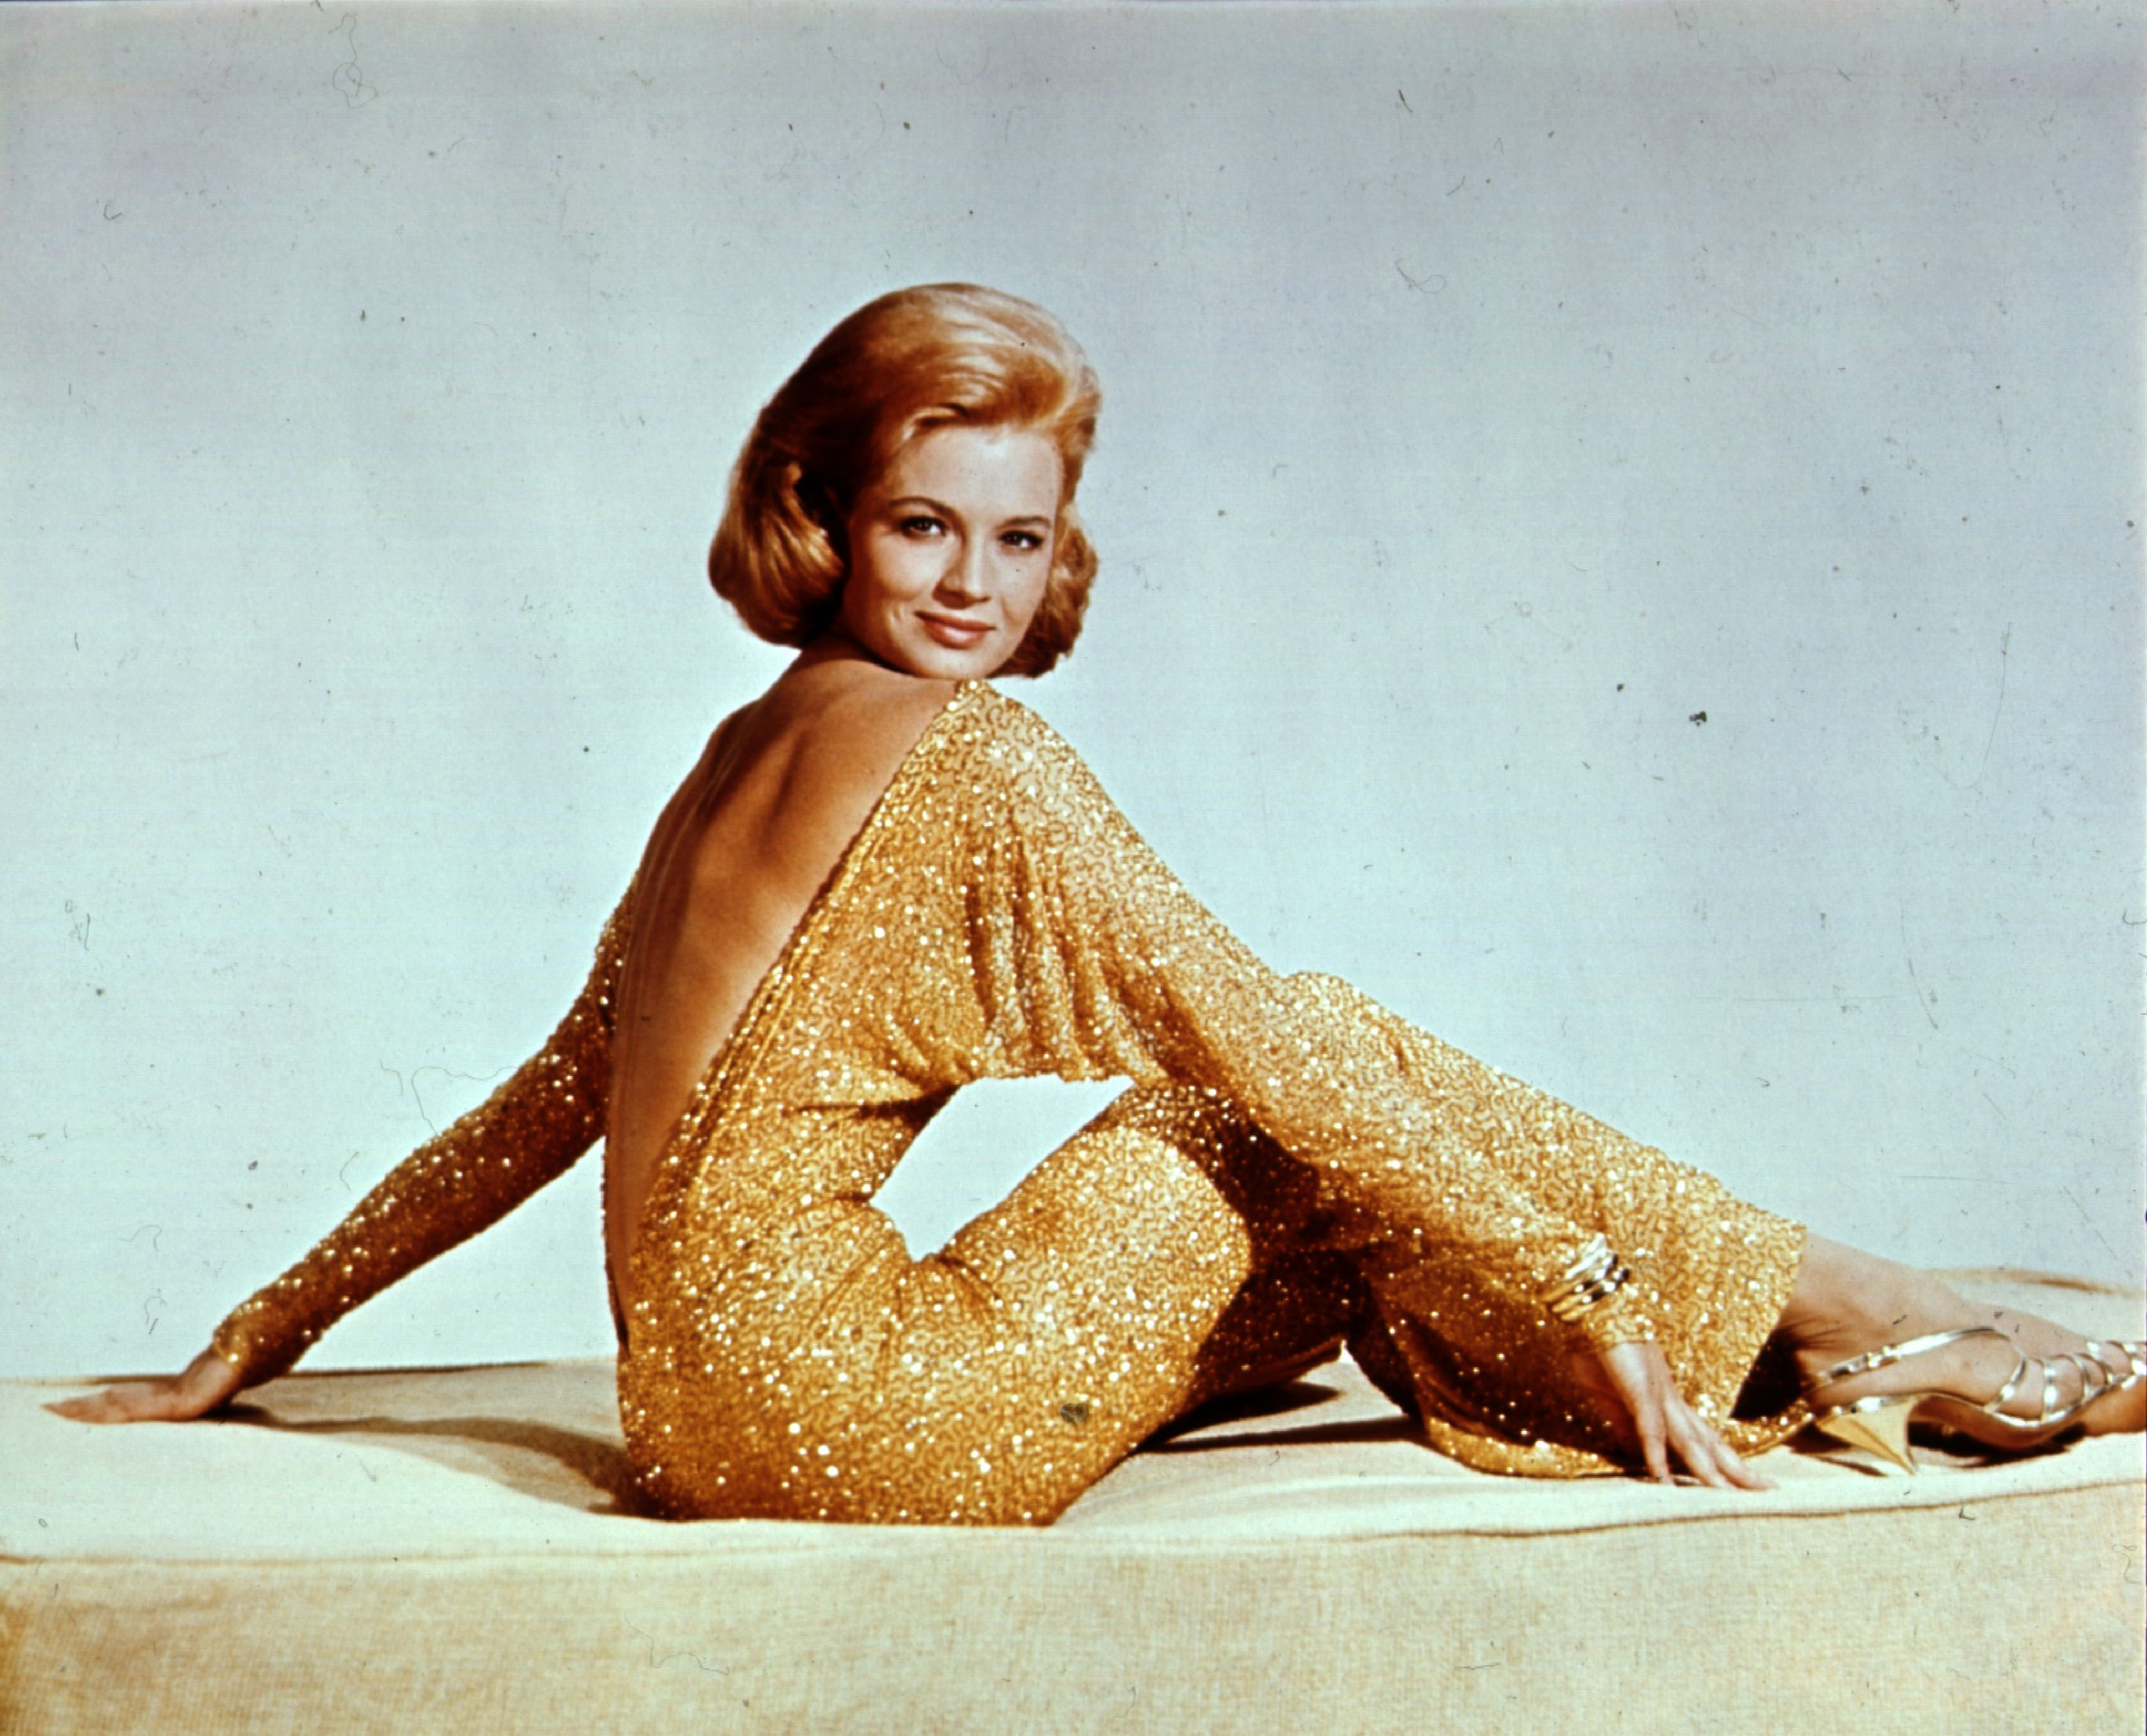 Angie Dickinson wearing a backless gold lame evening dress with batwing sleeves, circa 1965.   Source: Getty Images